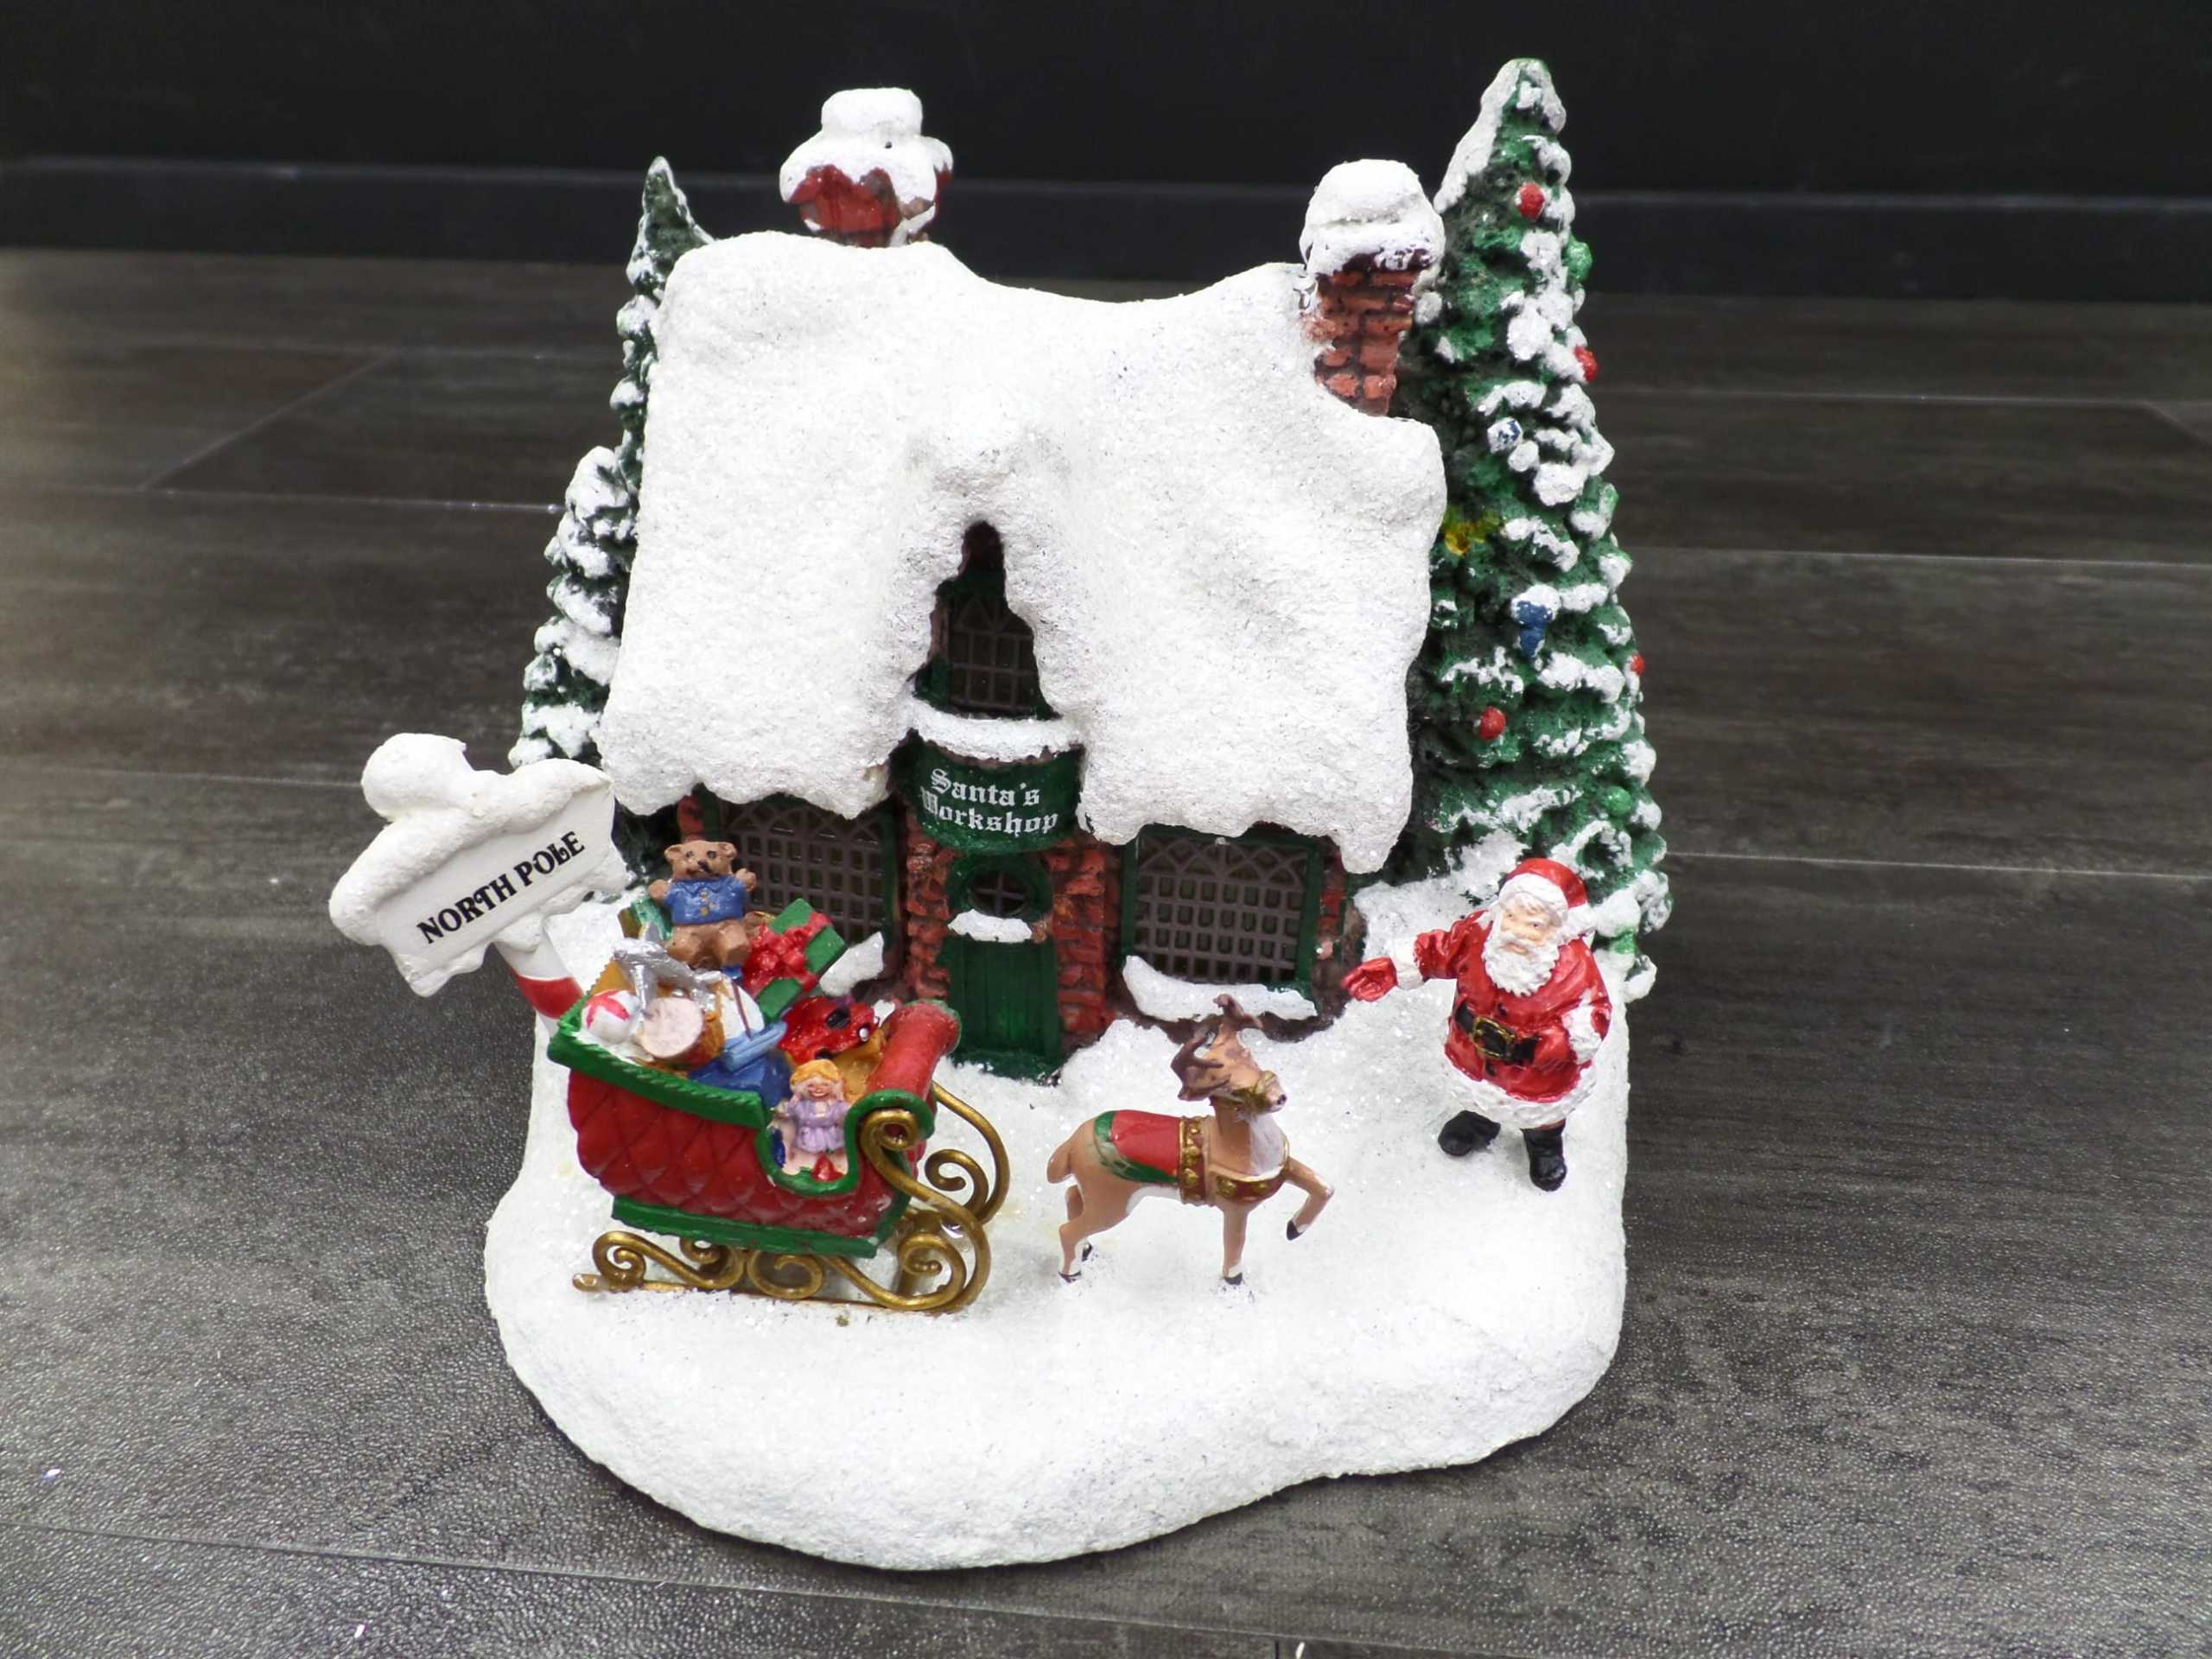 2010 THOMAS KINKADE SANTA'S WORKSHOP <br/> Donated by: WPBS SUPPORTER <br/> Valued at: $30 <br/> Buy It Now: $20